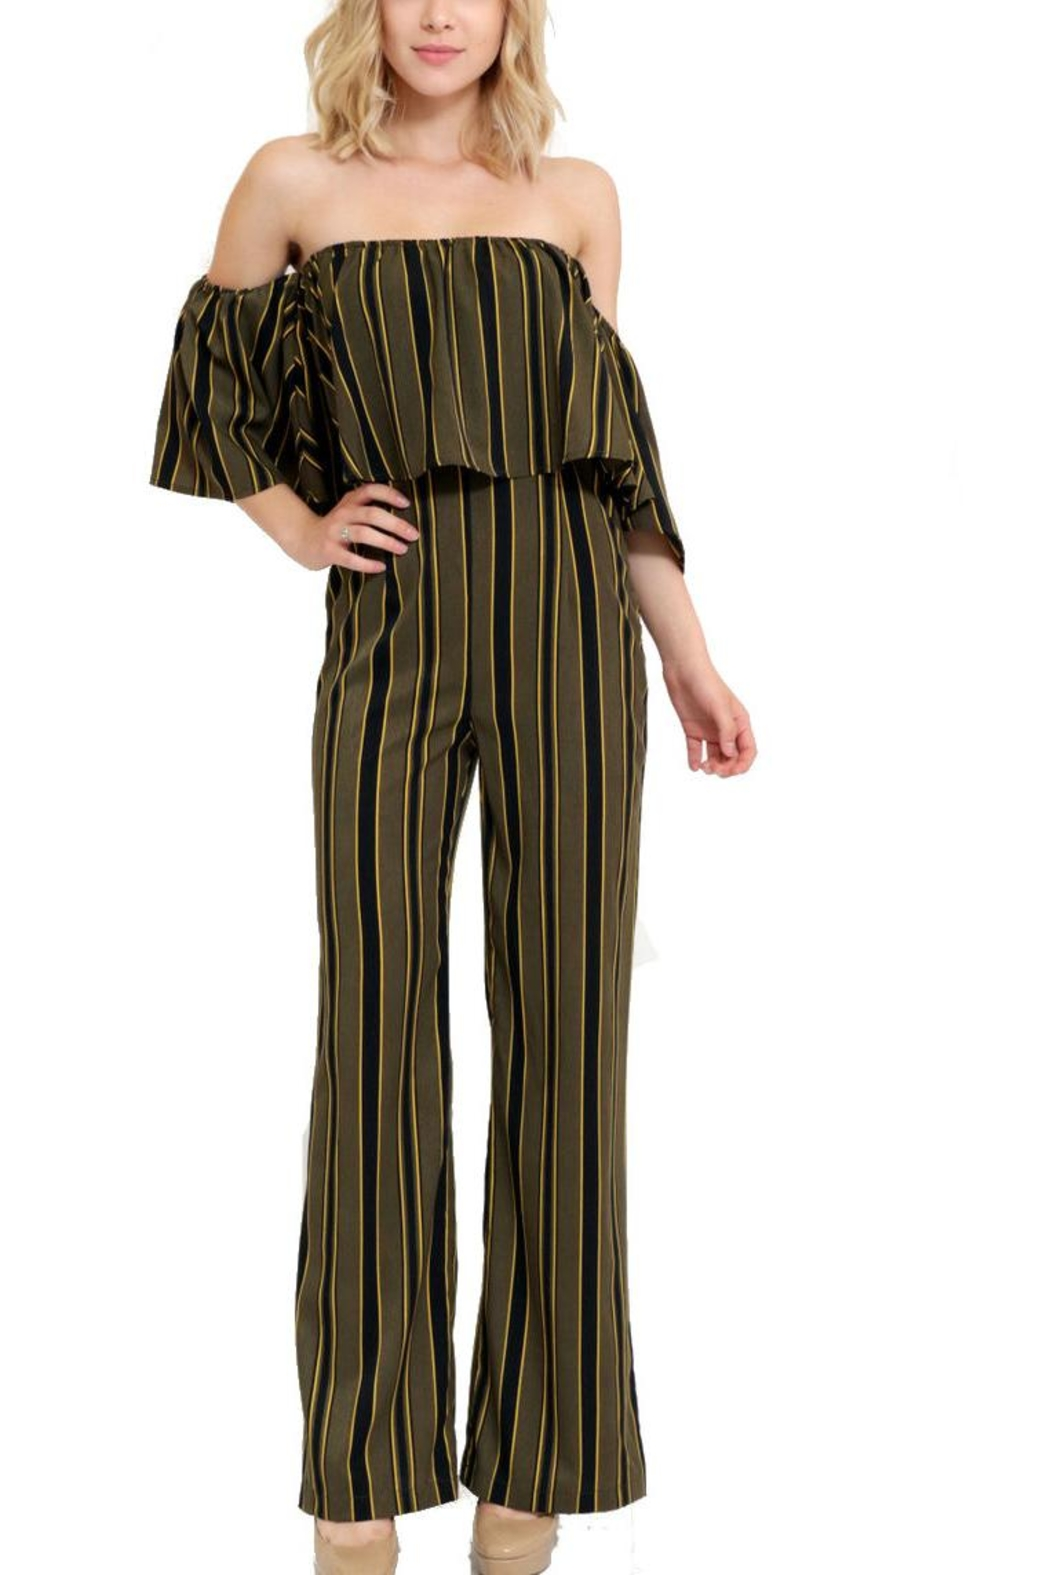 1 Funky Striped Jumpsuit From California By Yuni Shoptiques